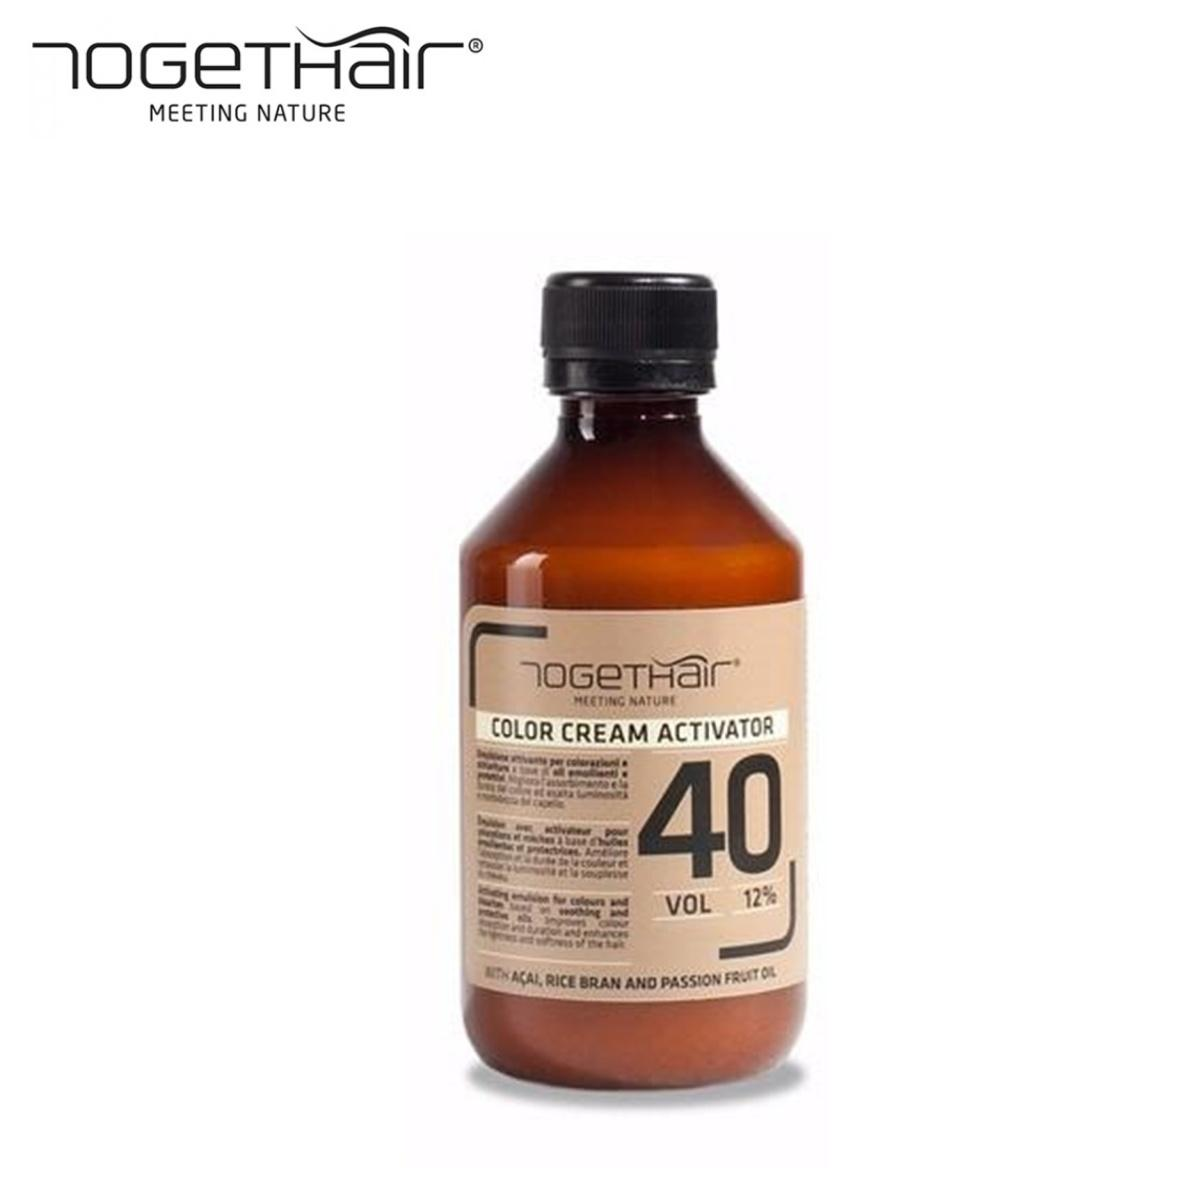 Togethair Ossigeno In Crema 40 Vol 12% ( Attivatore ) 250 ml.